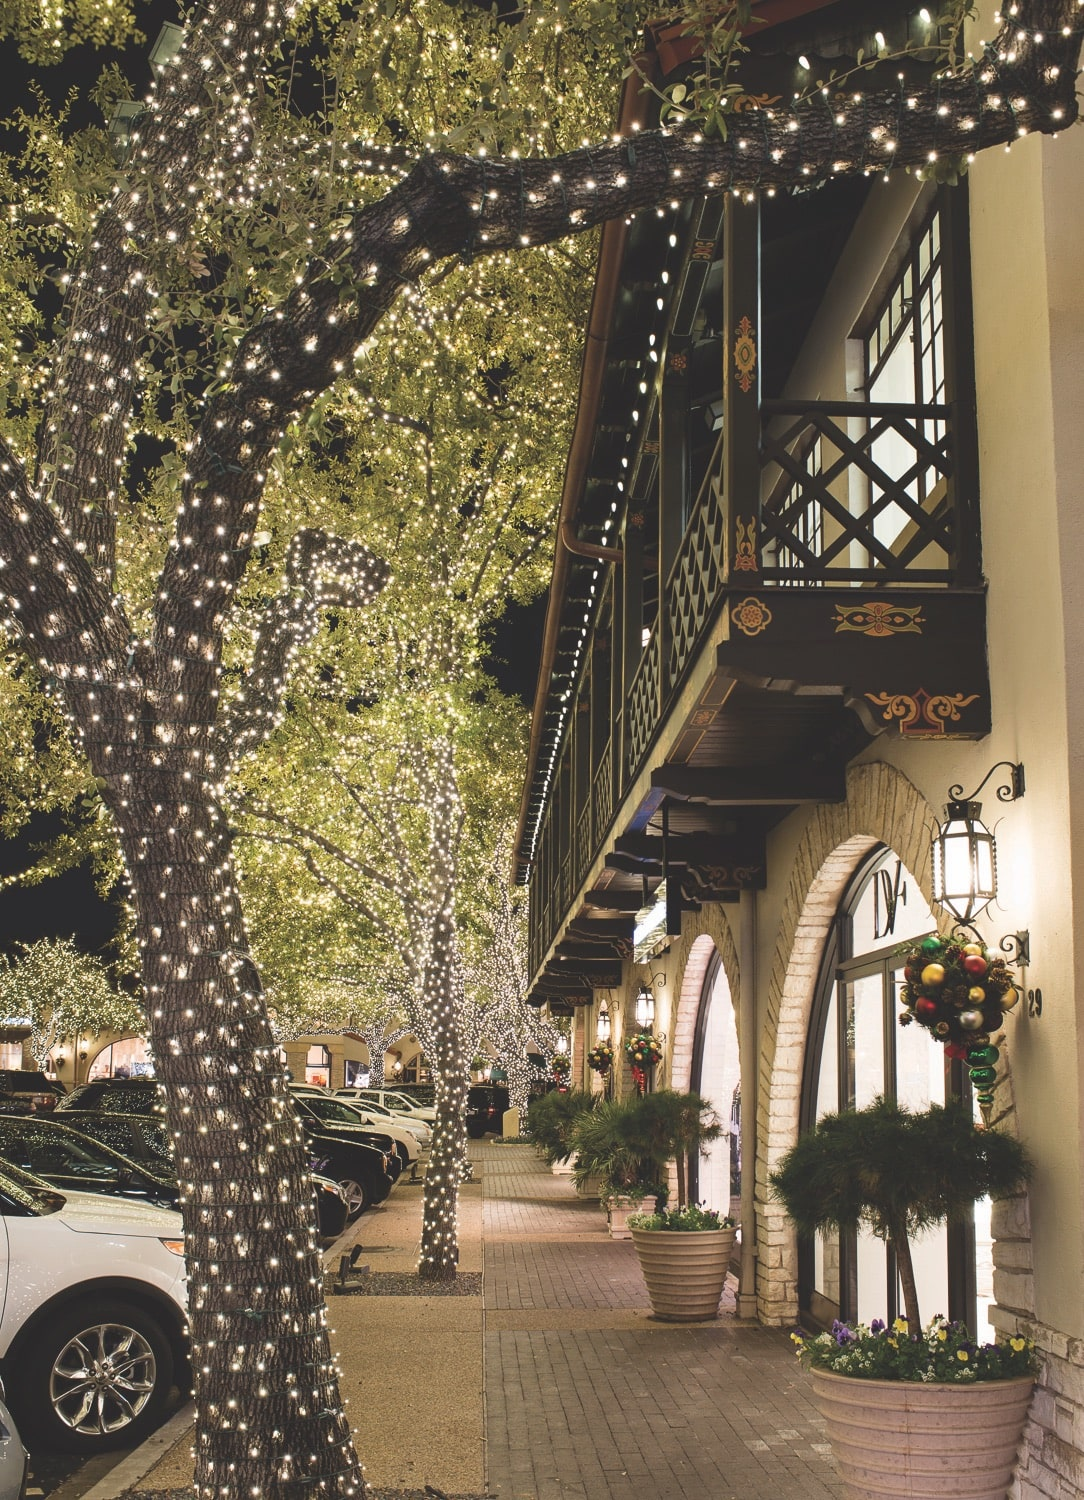 Highland Park Village at the holidays